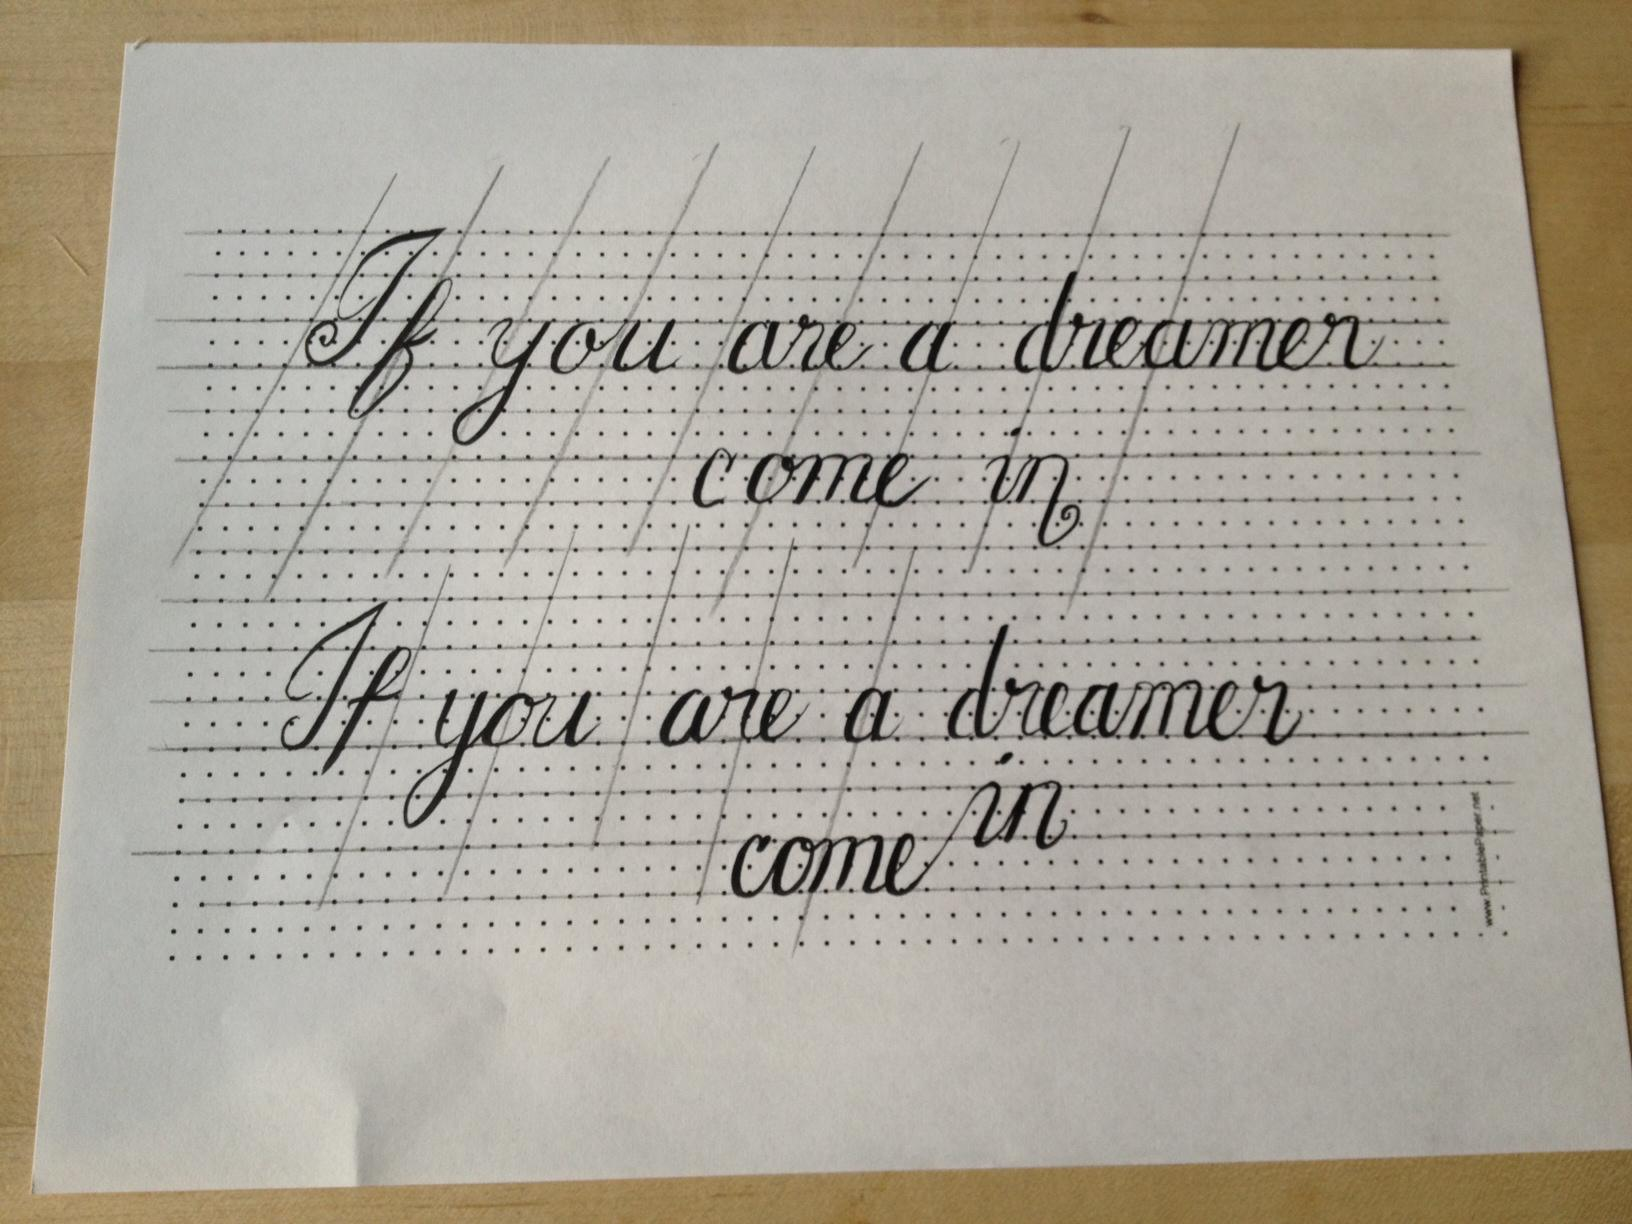 If you are a dreamer, come in - image 4 - student project